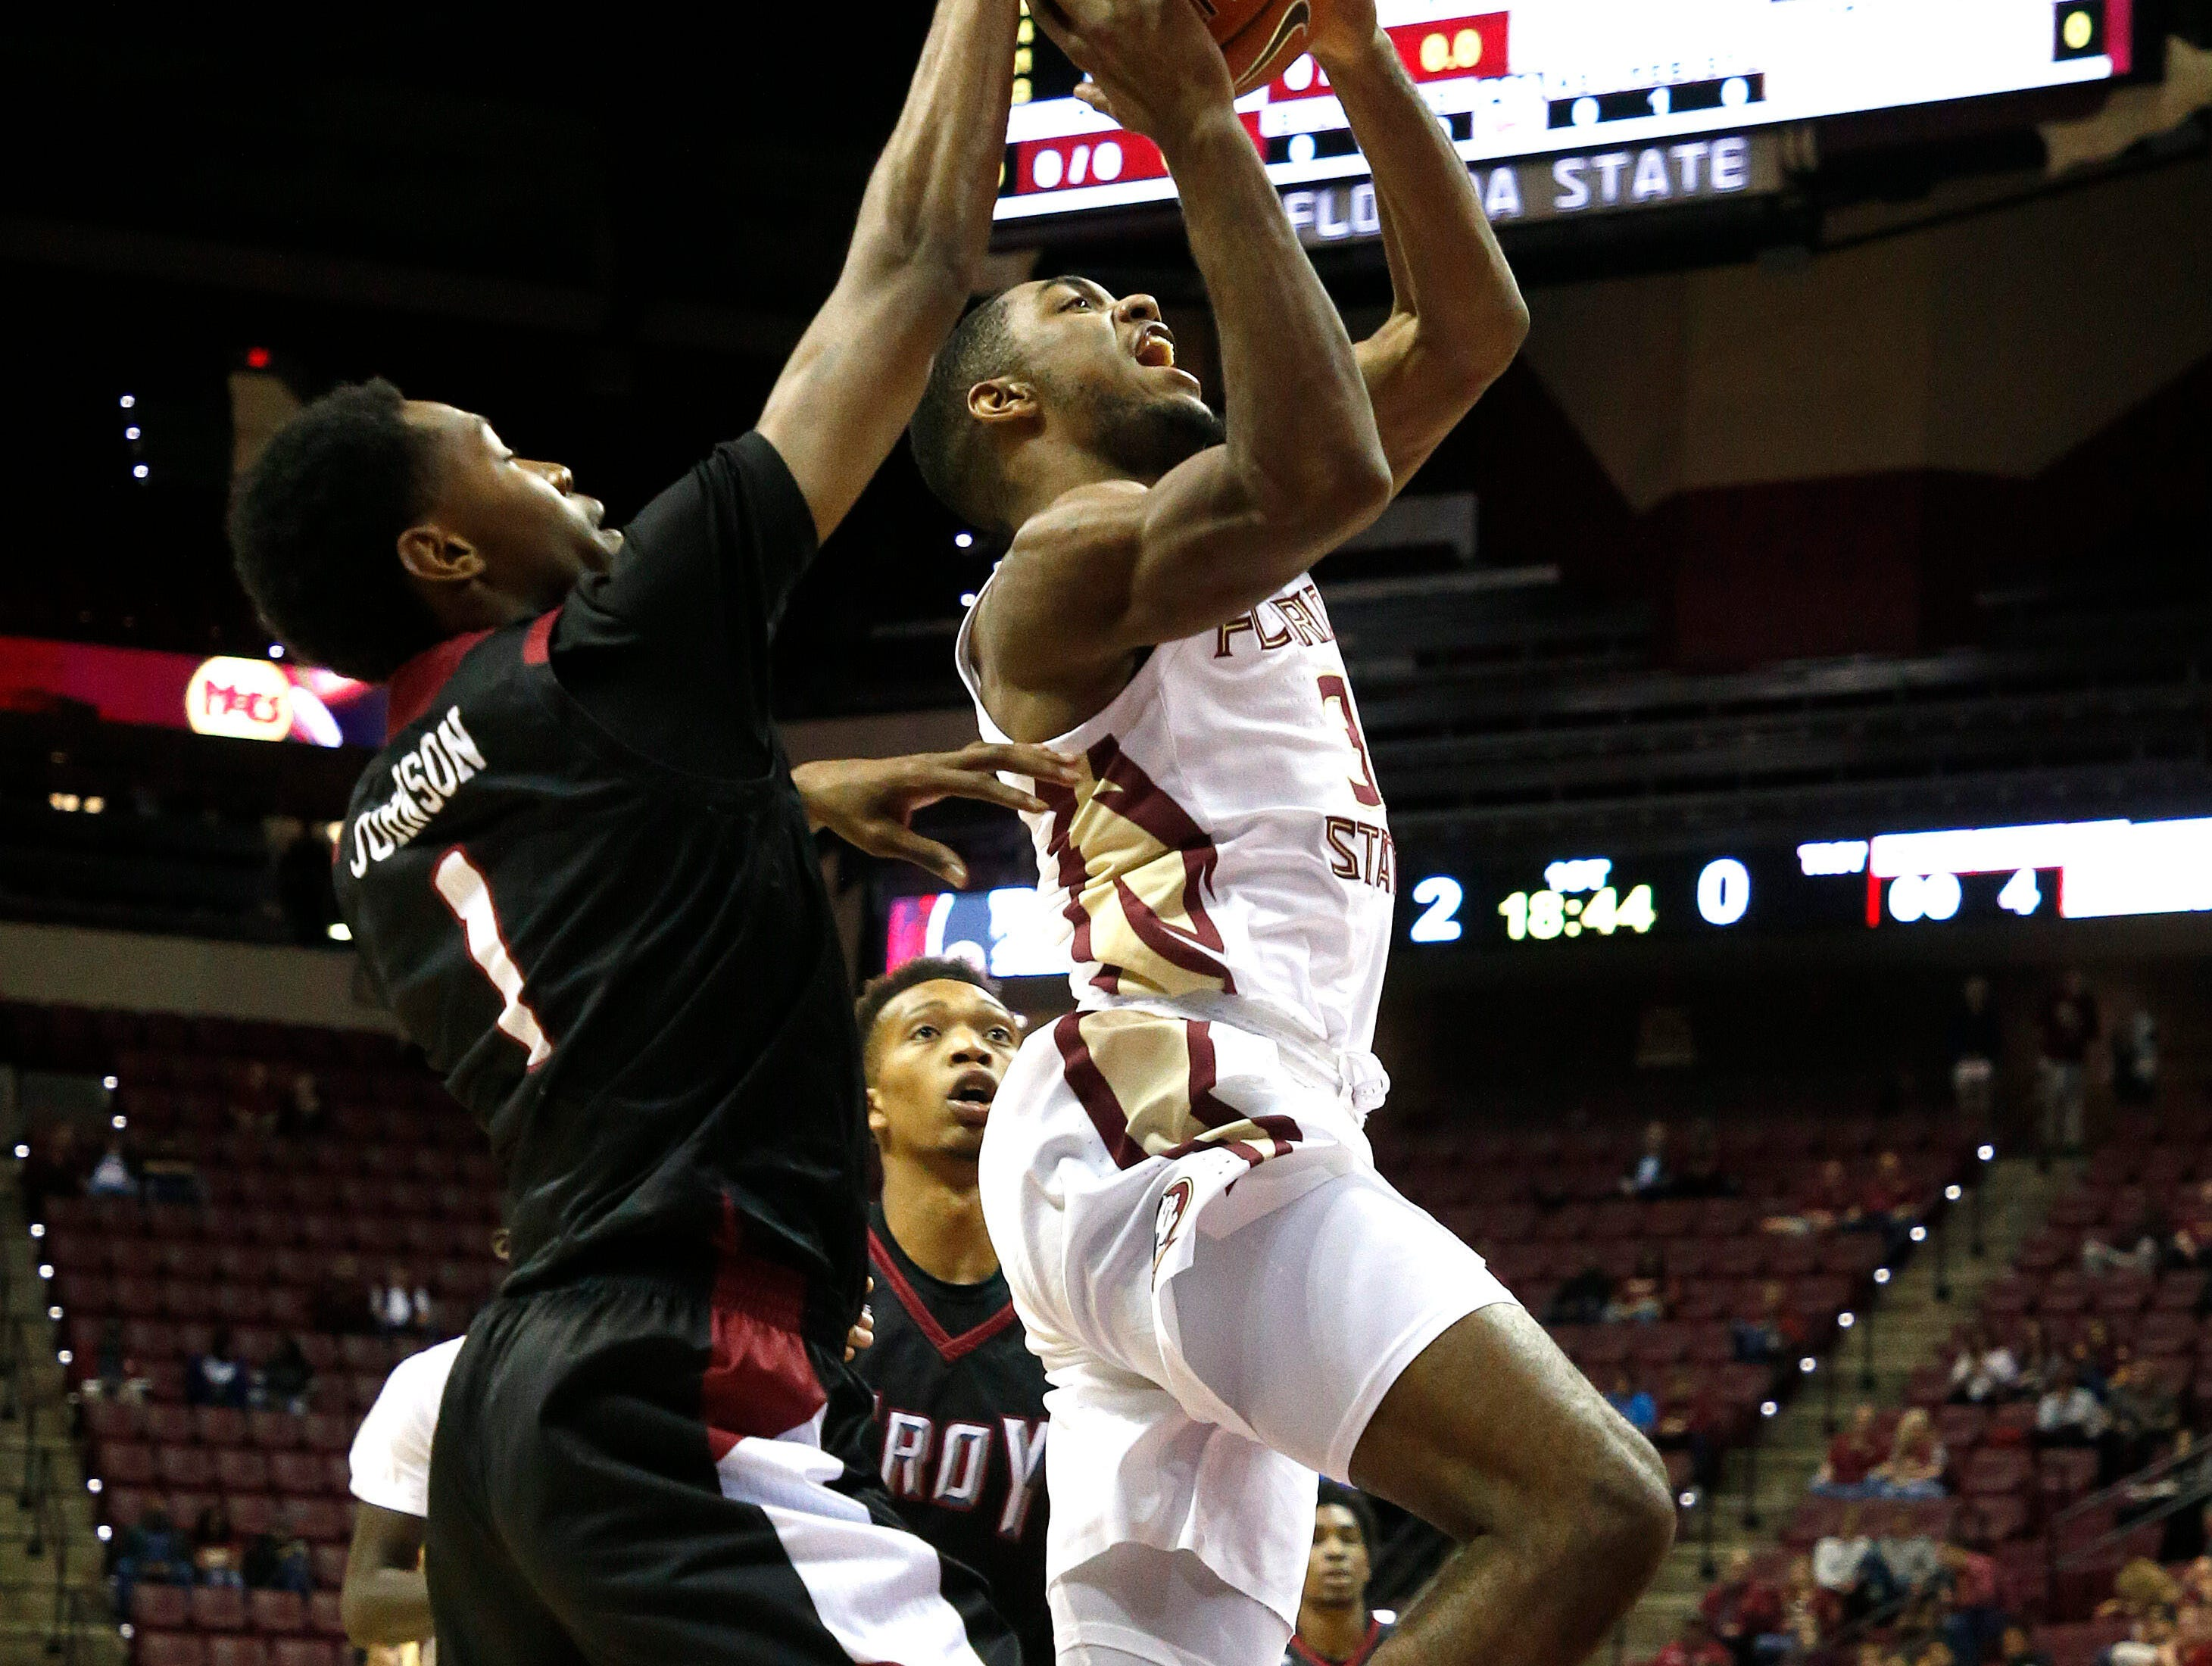 Dec 3, 2018; Tallahassee, FL, USA;  Troy Trojans forward Javan Johnson (1) is called for a foul against Florida State Seminoles guard Trent Forrest (3) at Donald L. Tucker Center during the first half. Mandatory Credit: Glenn Beil-USA TODAY Sports